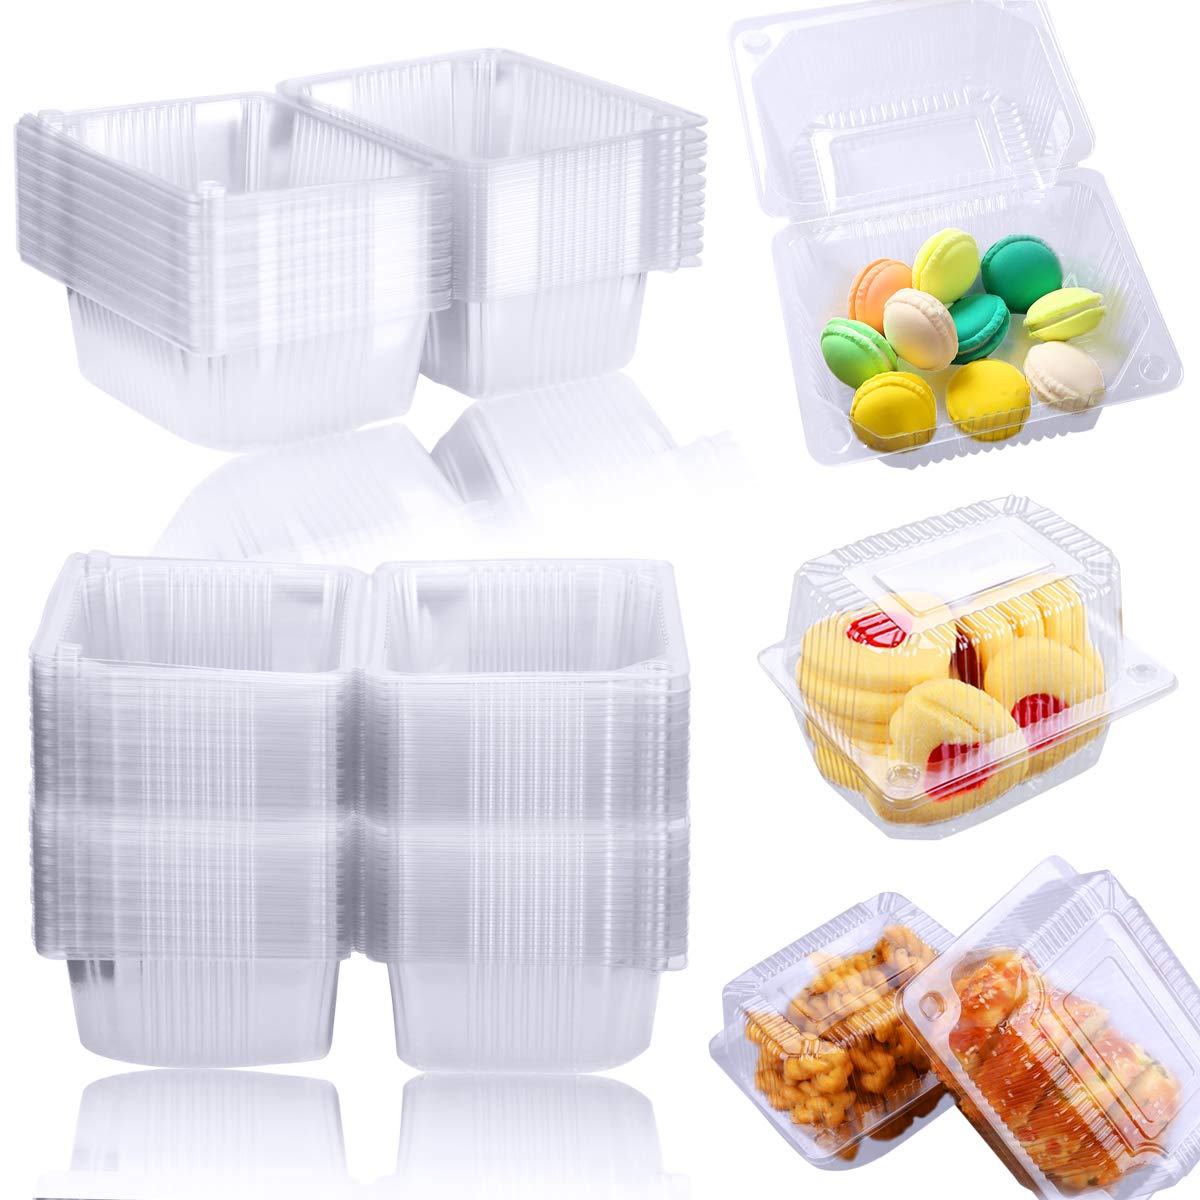 Twdrer 100PCS Clear Plastic Square Hinged Food Container,Disposable Clamshell Fruit Salads Hamburger Sandwiches Cupcake Cups Holders Cases Boxes Containers with Lids(5.3